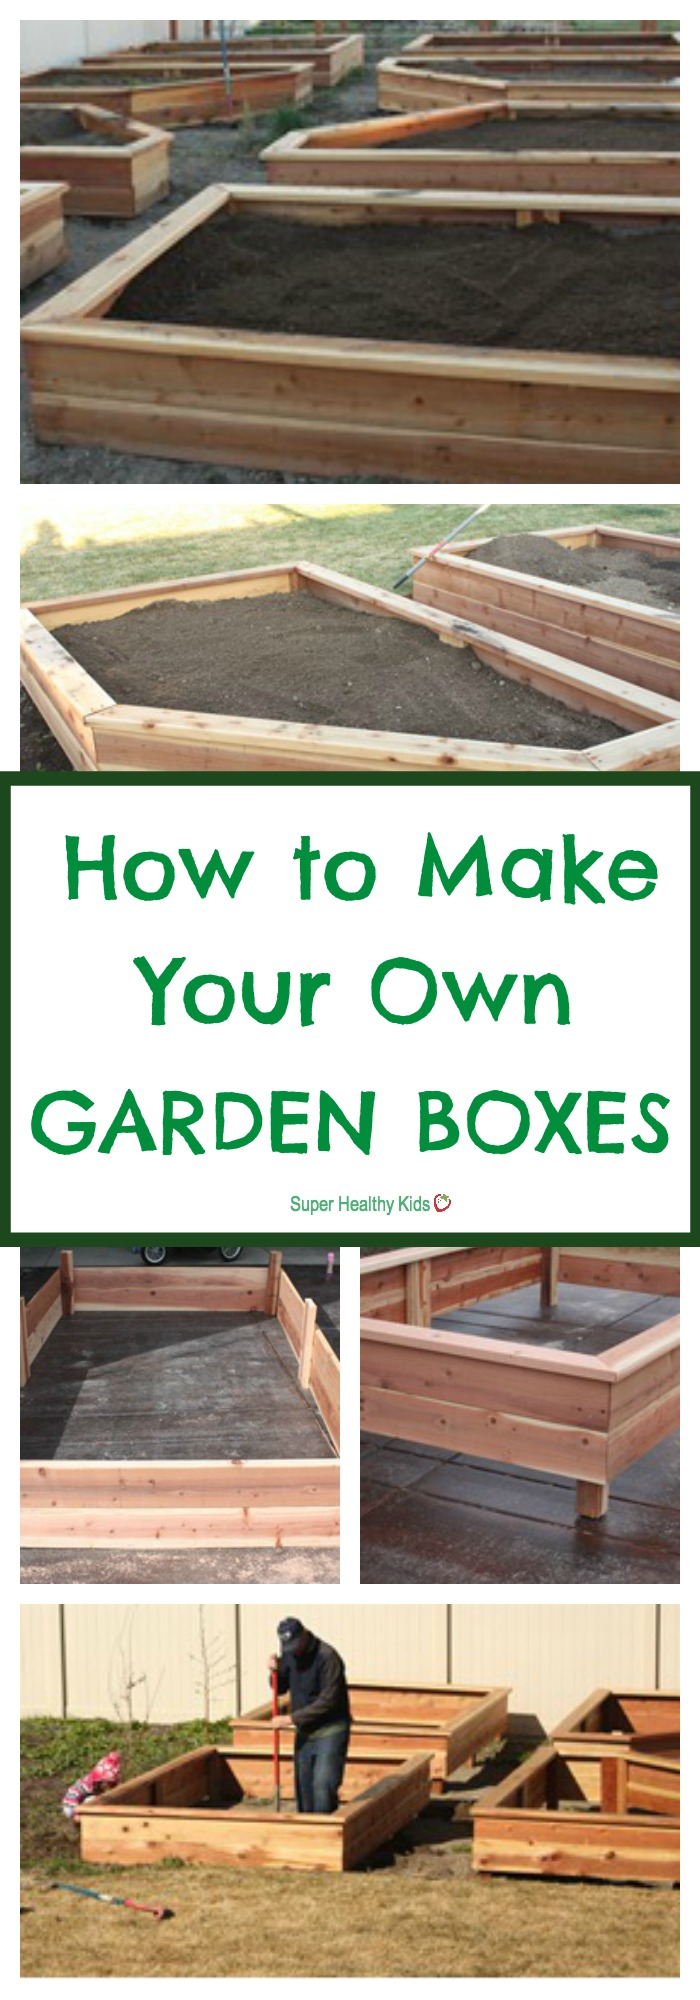 GARDENING - How to Make Your Own Garden Boxes. Everything you need to make this happen in your yard this year! http://www.superhealthykids.com/how-to-make-your-own-garden-boxes/